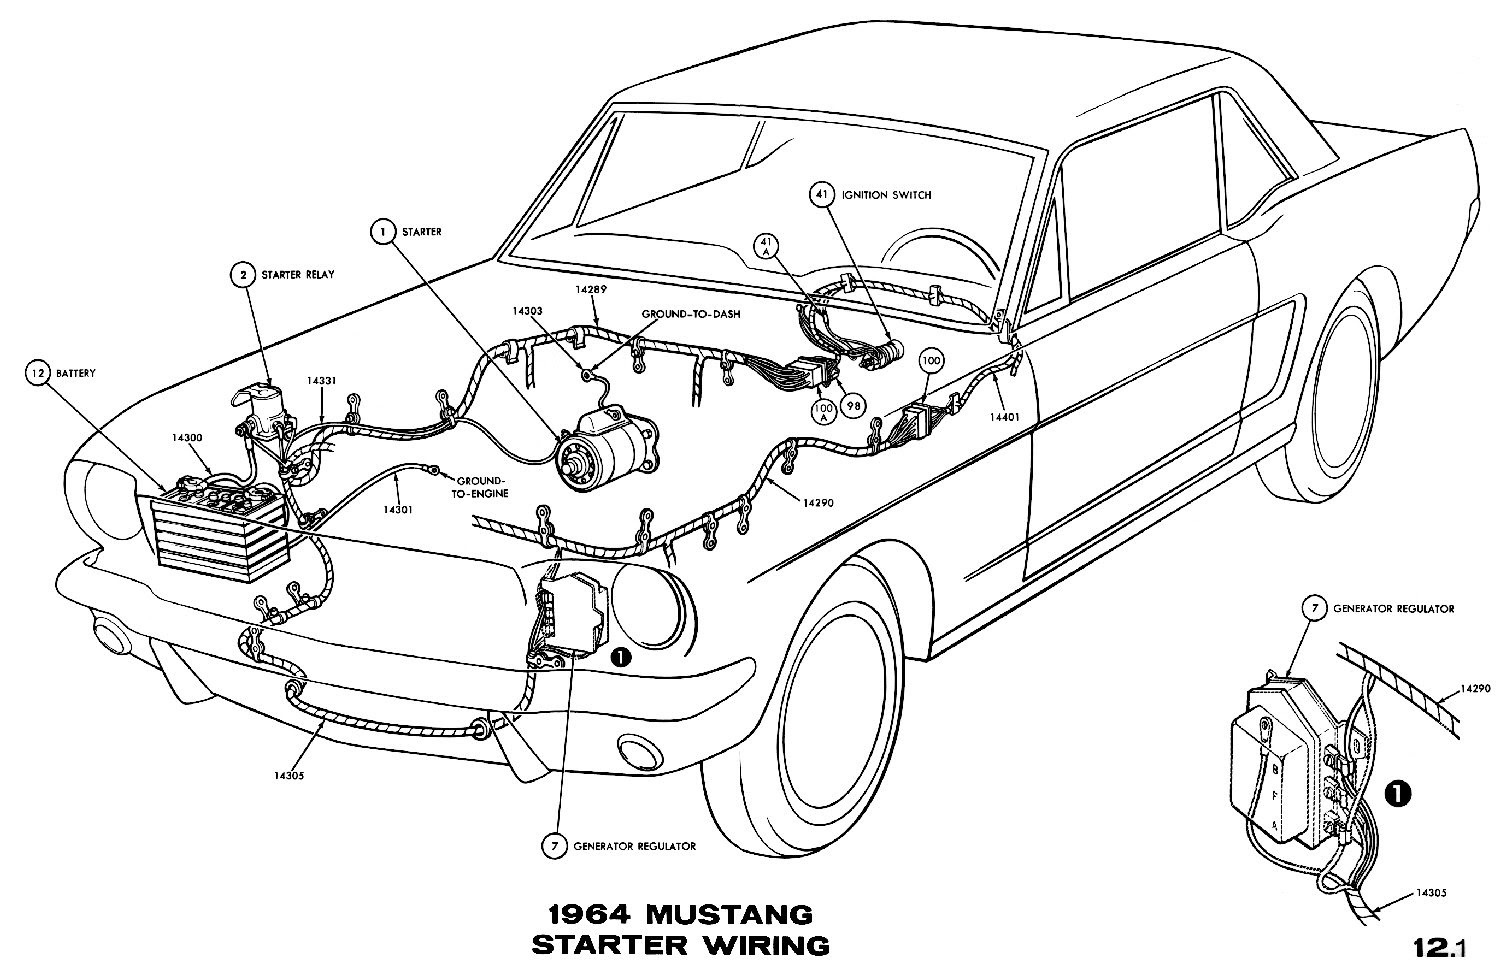 Diagram Fox Mustang Starter Wiring Diagram Full Version Hd Quality Wiring Diagram Mydiagramx18 Osteriadamariano It